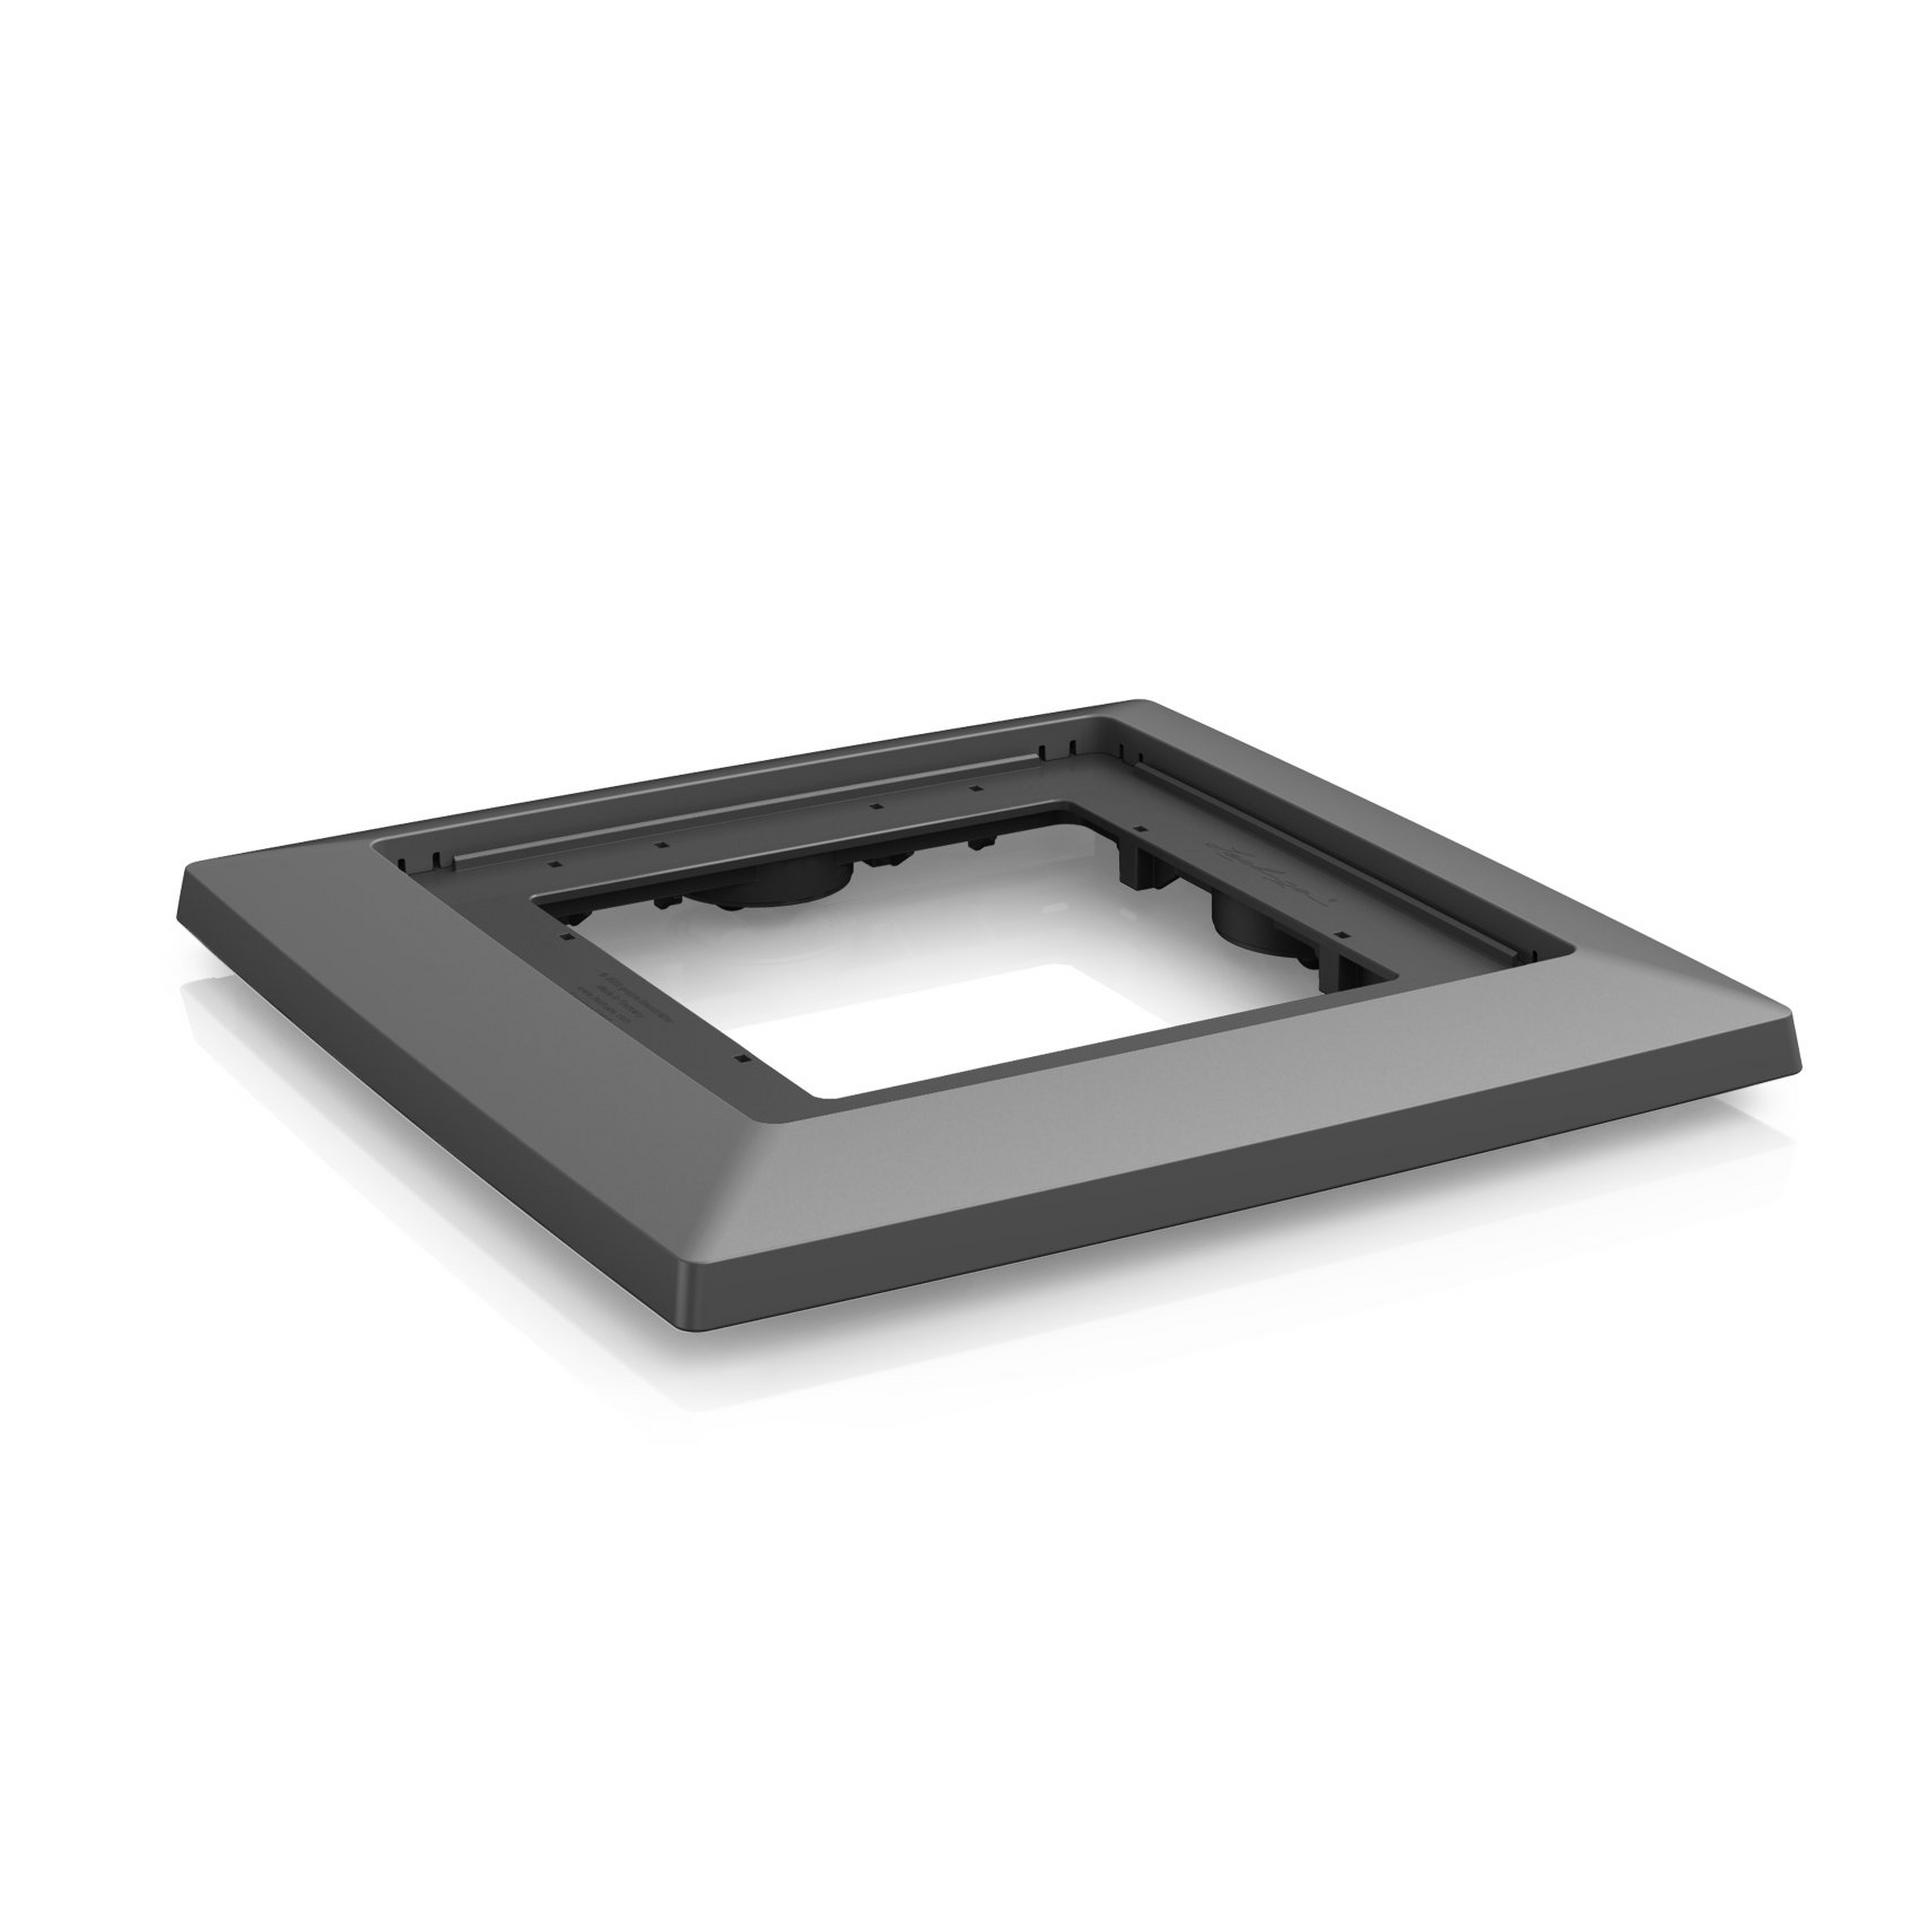 Coaster for CUBICO 40 charcoal